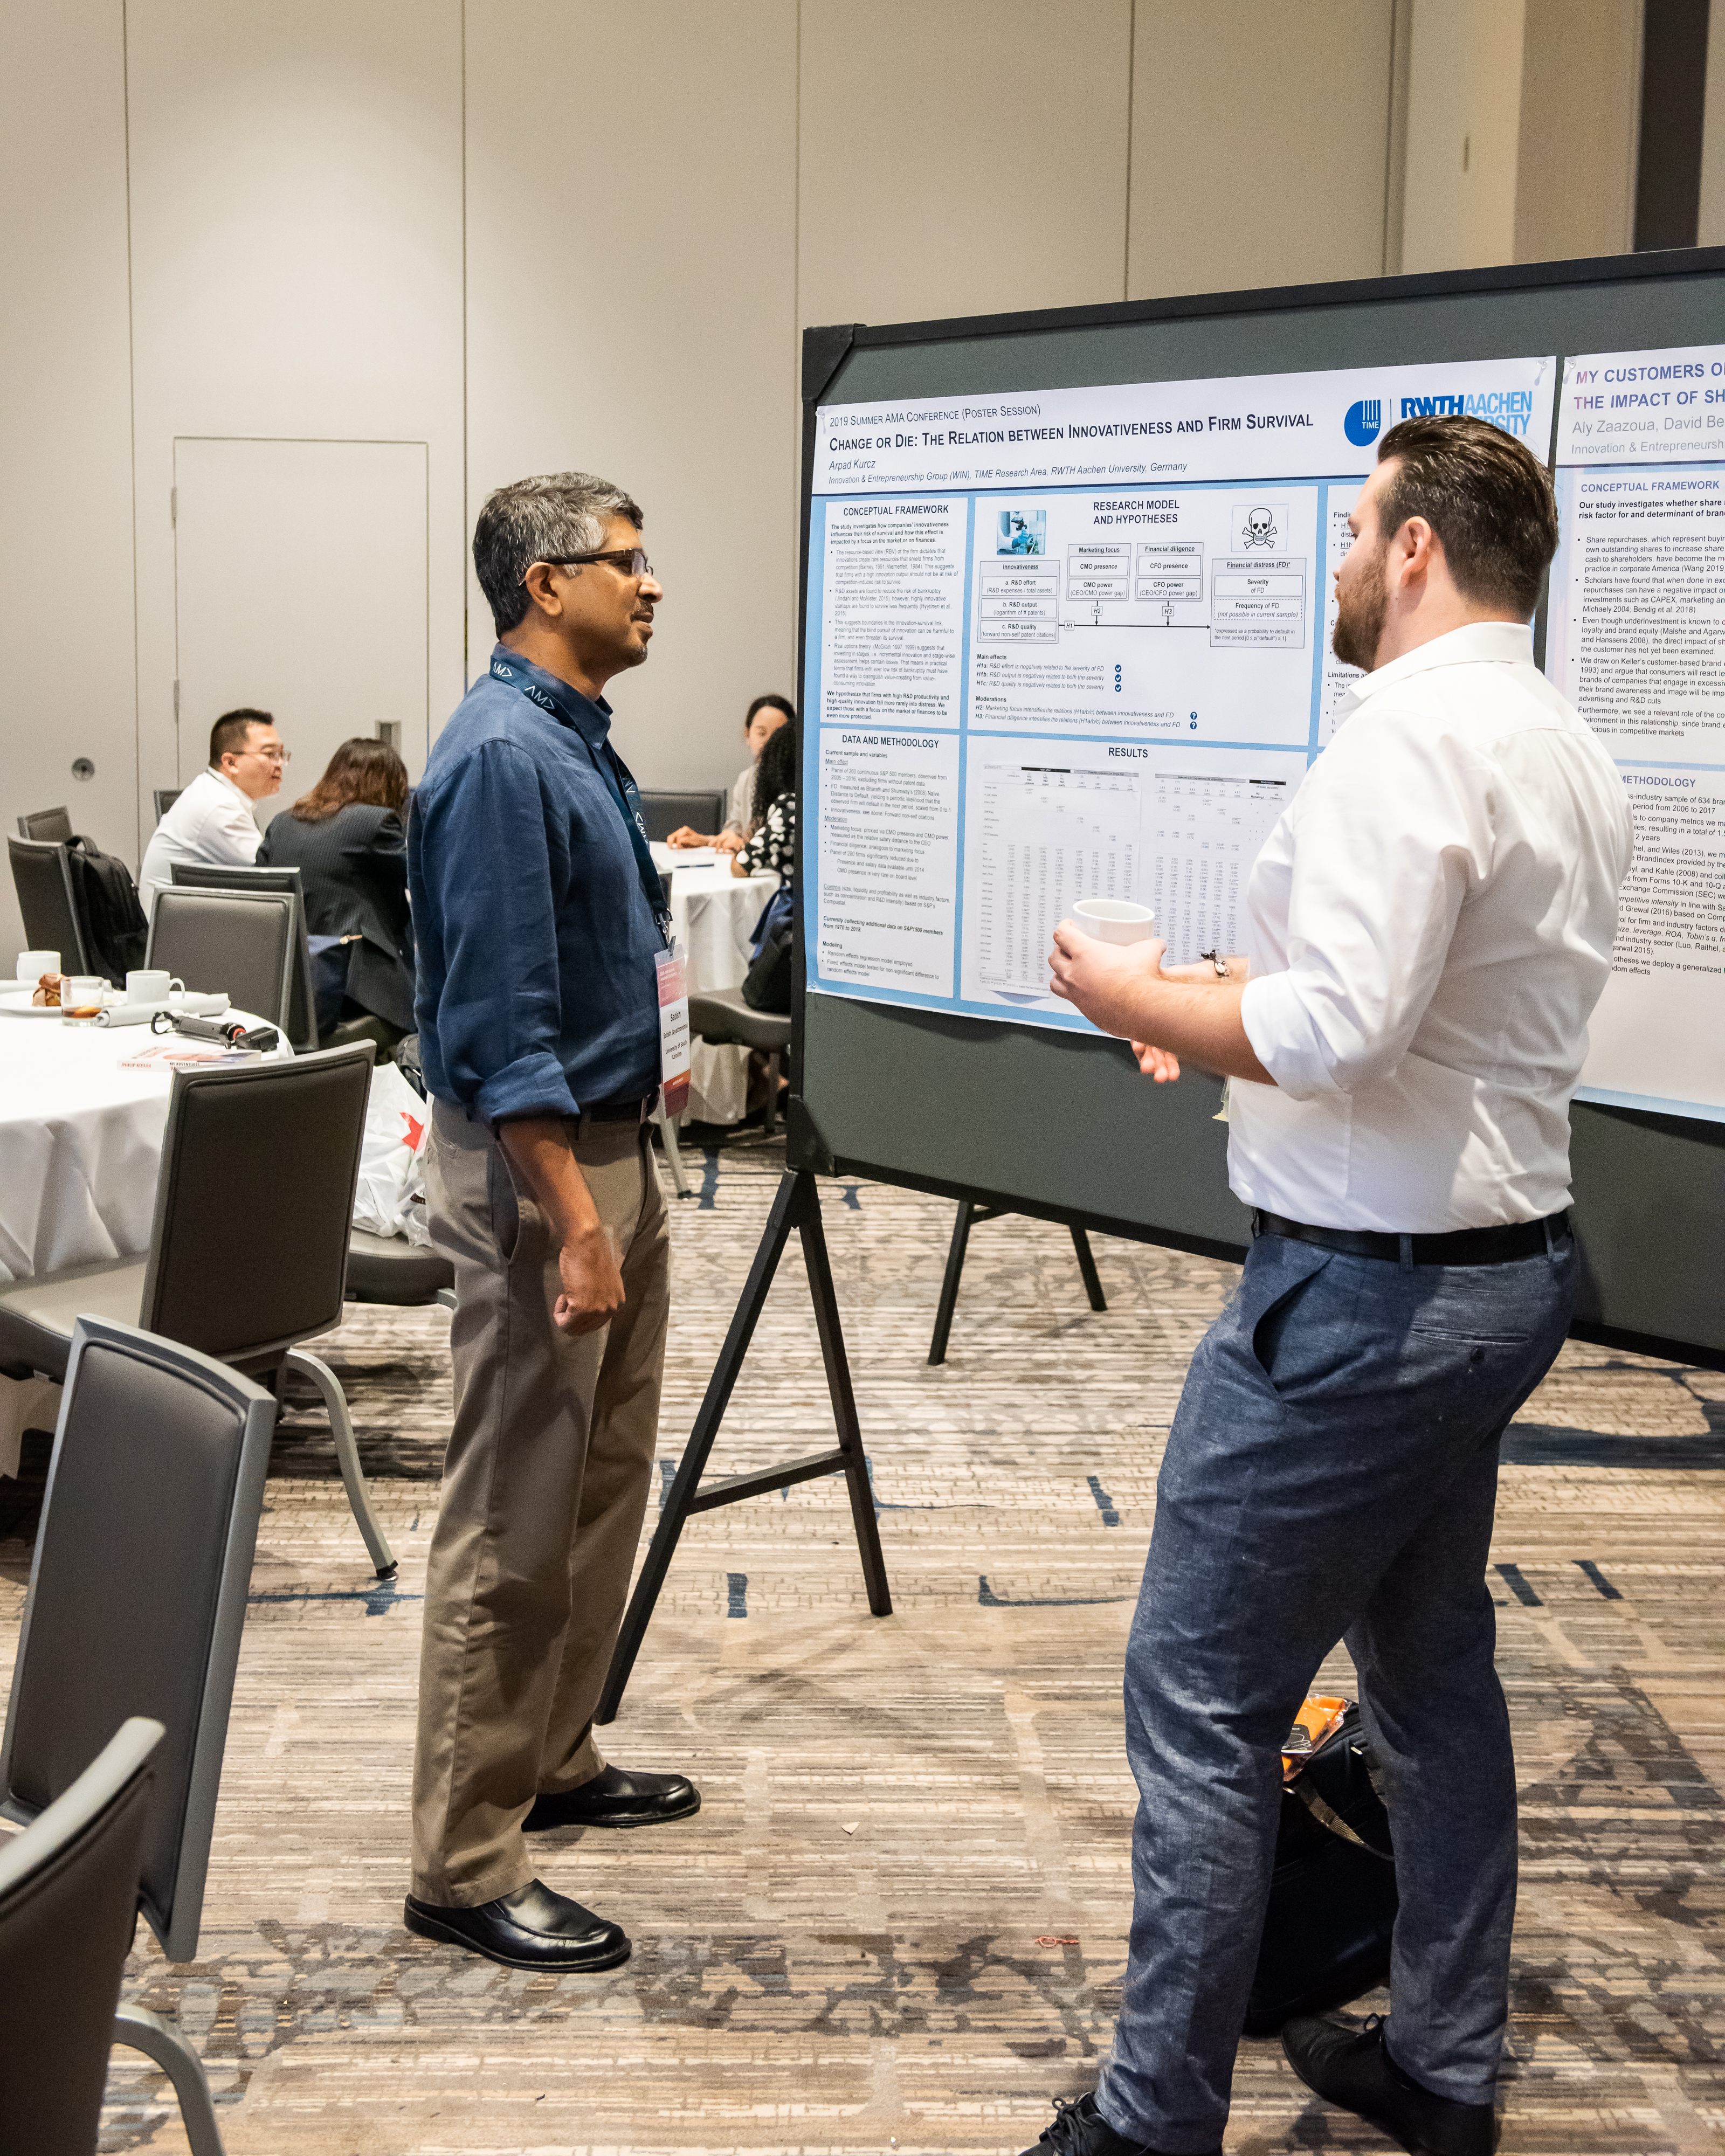 Https://www.ama/2019/11/05/poster Session Information At Inside Uri Spring Break Dateshttps://events.uri.edu/calendar